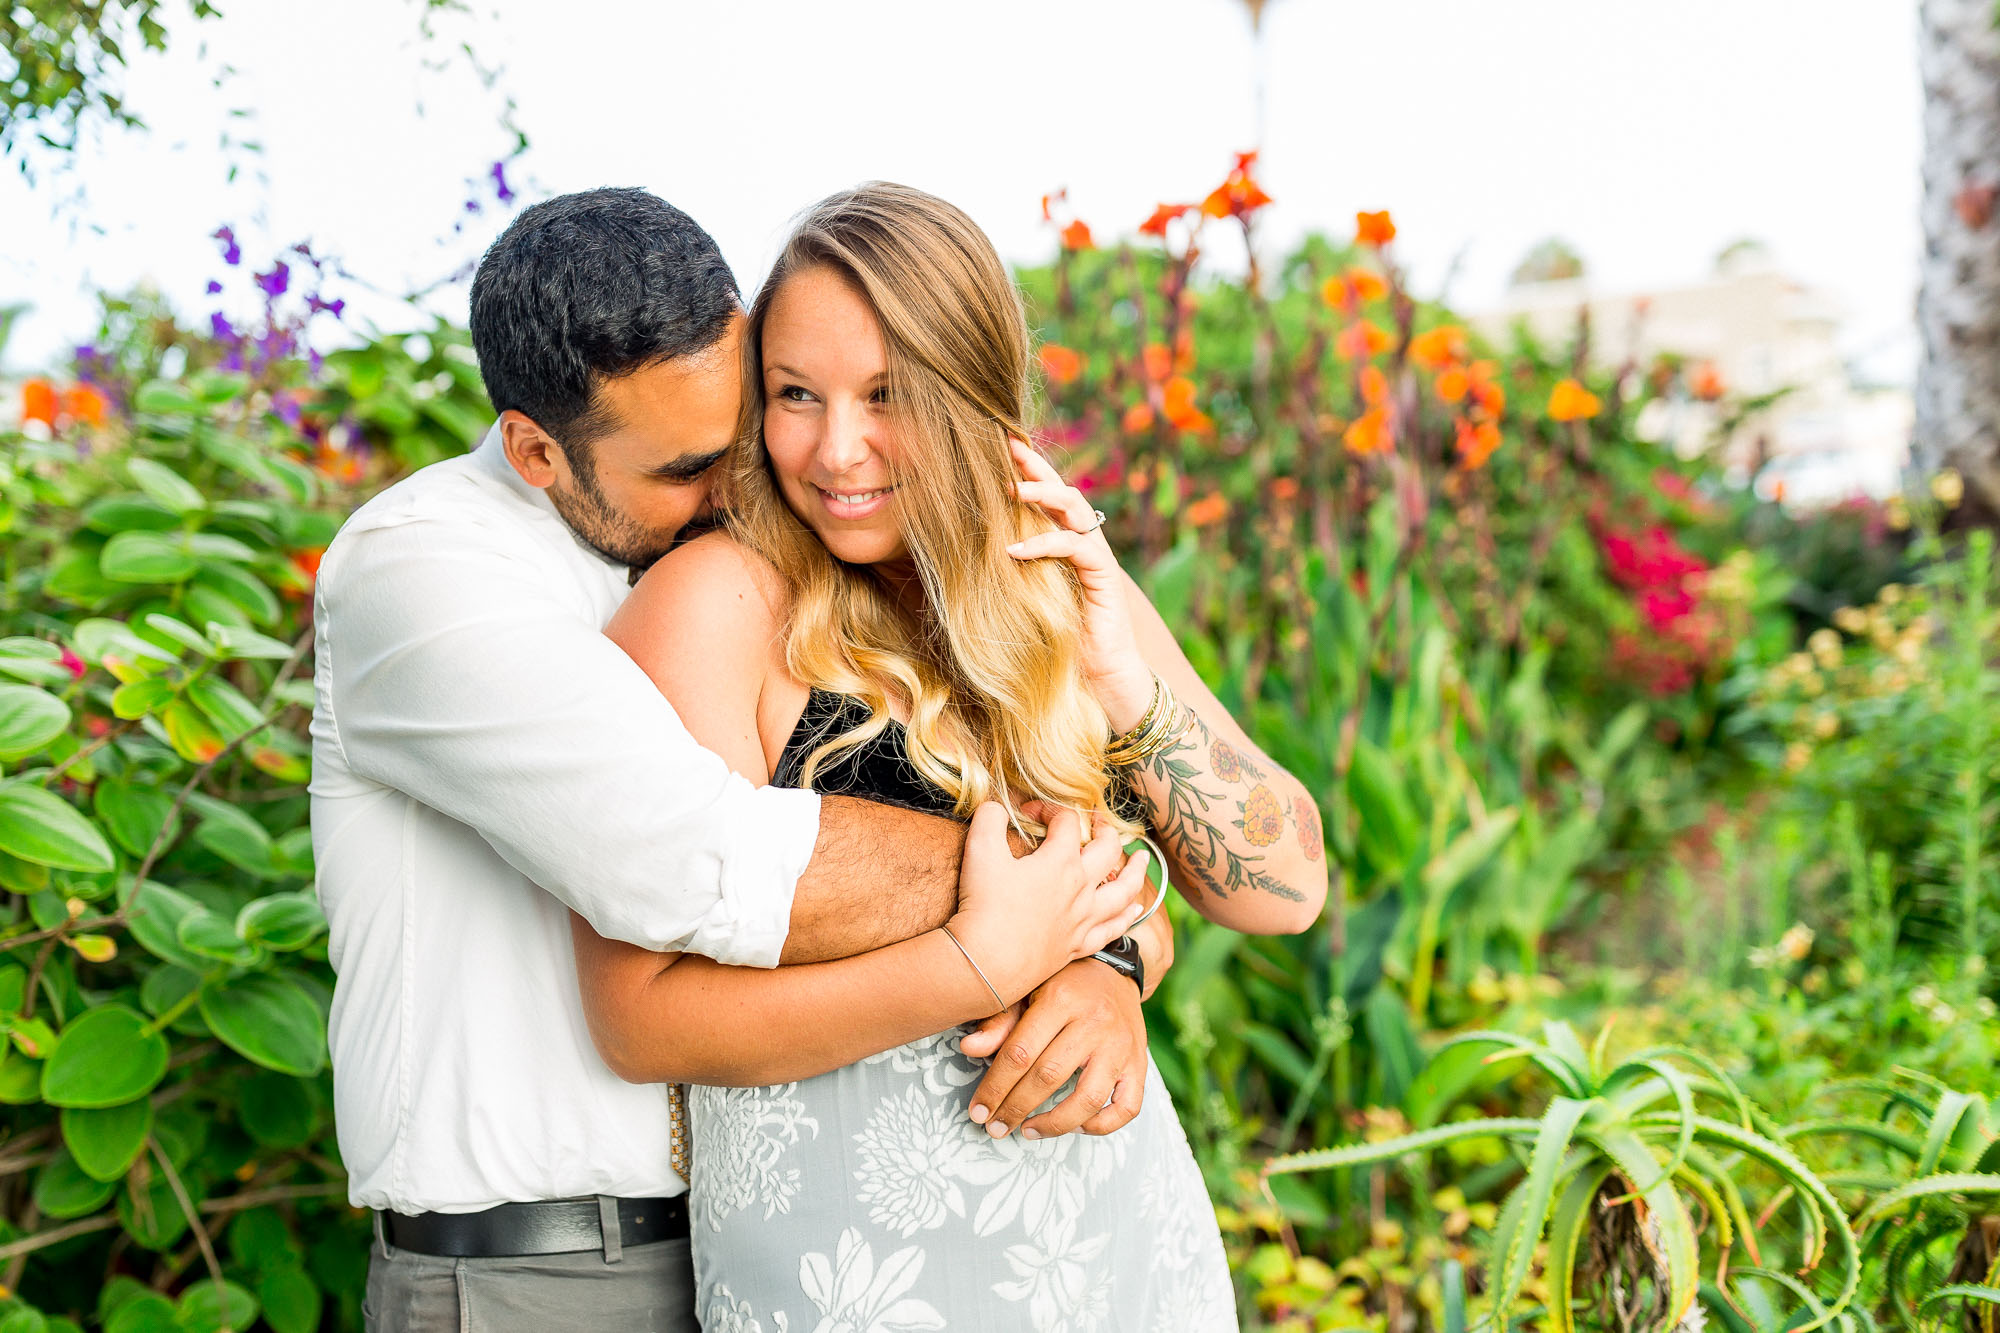 Justine_Puneet_Cardiff_Engagement_Session_022.jpg